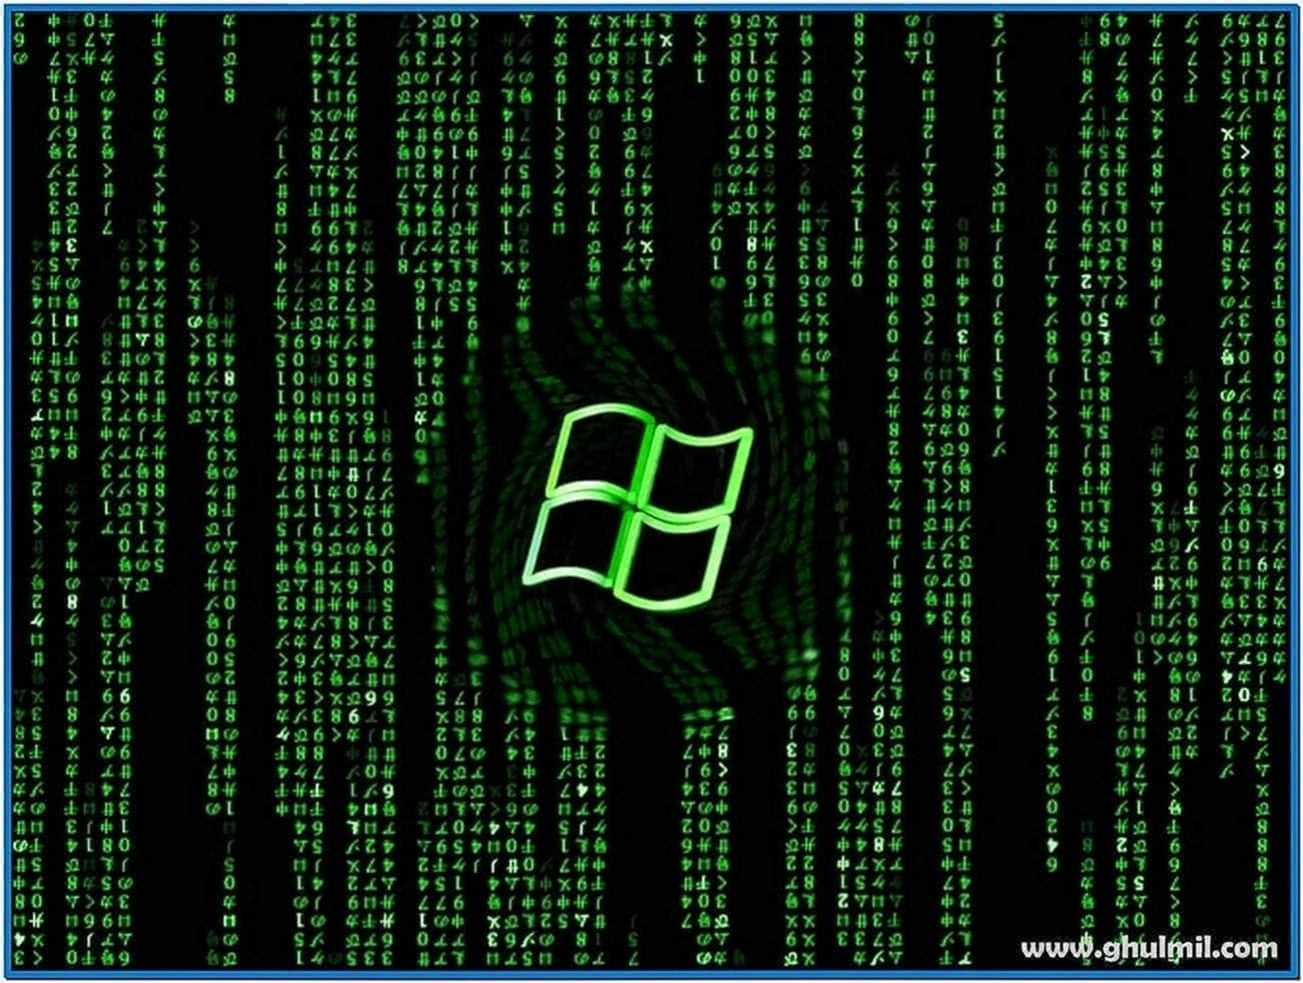 Matrix Code Screensaver Windows 7 64bit